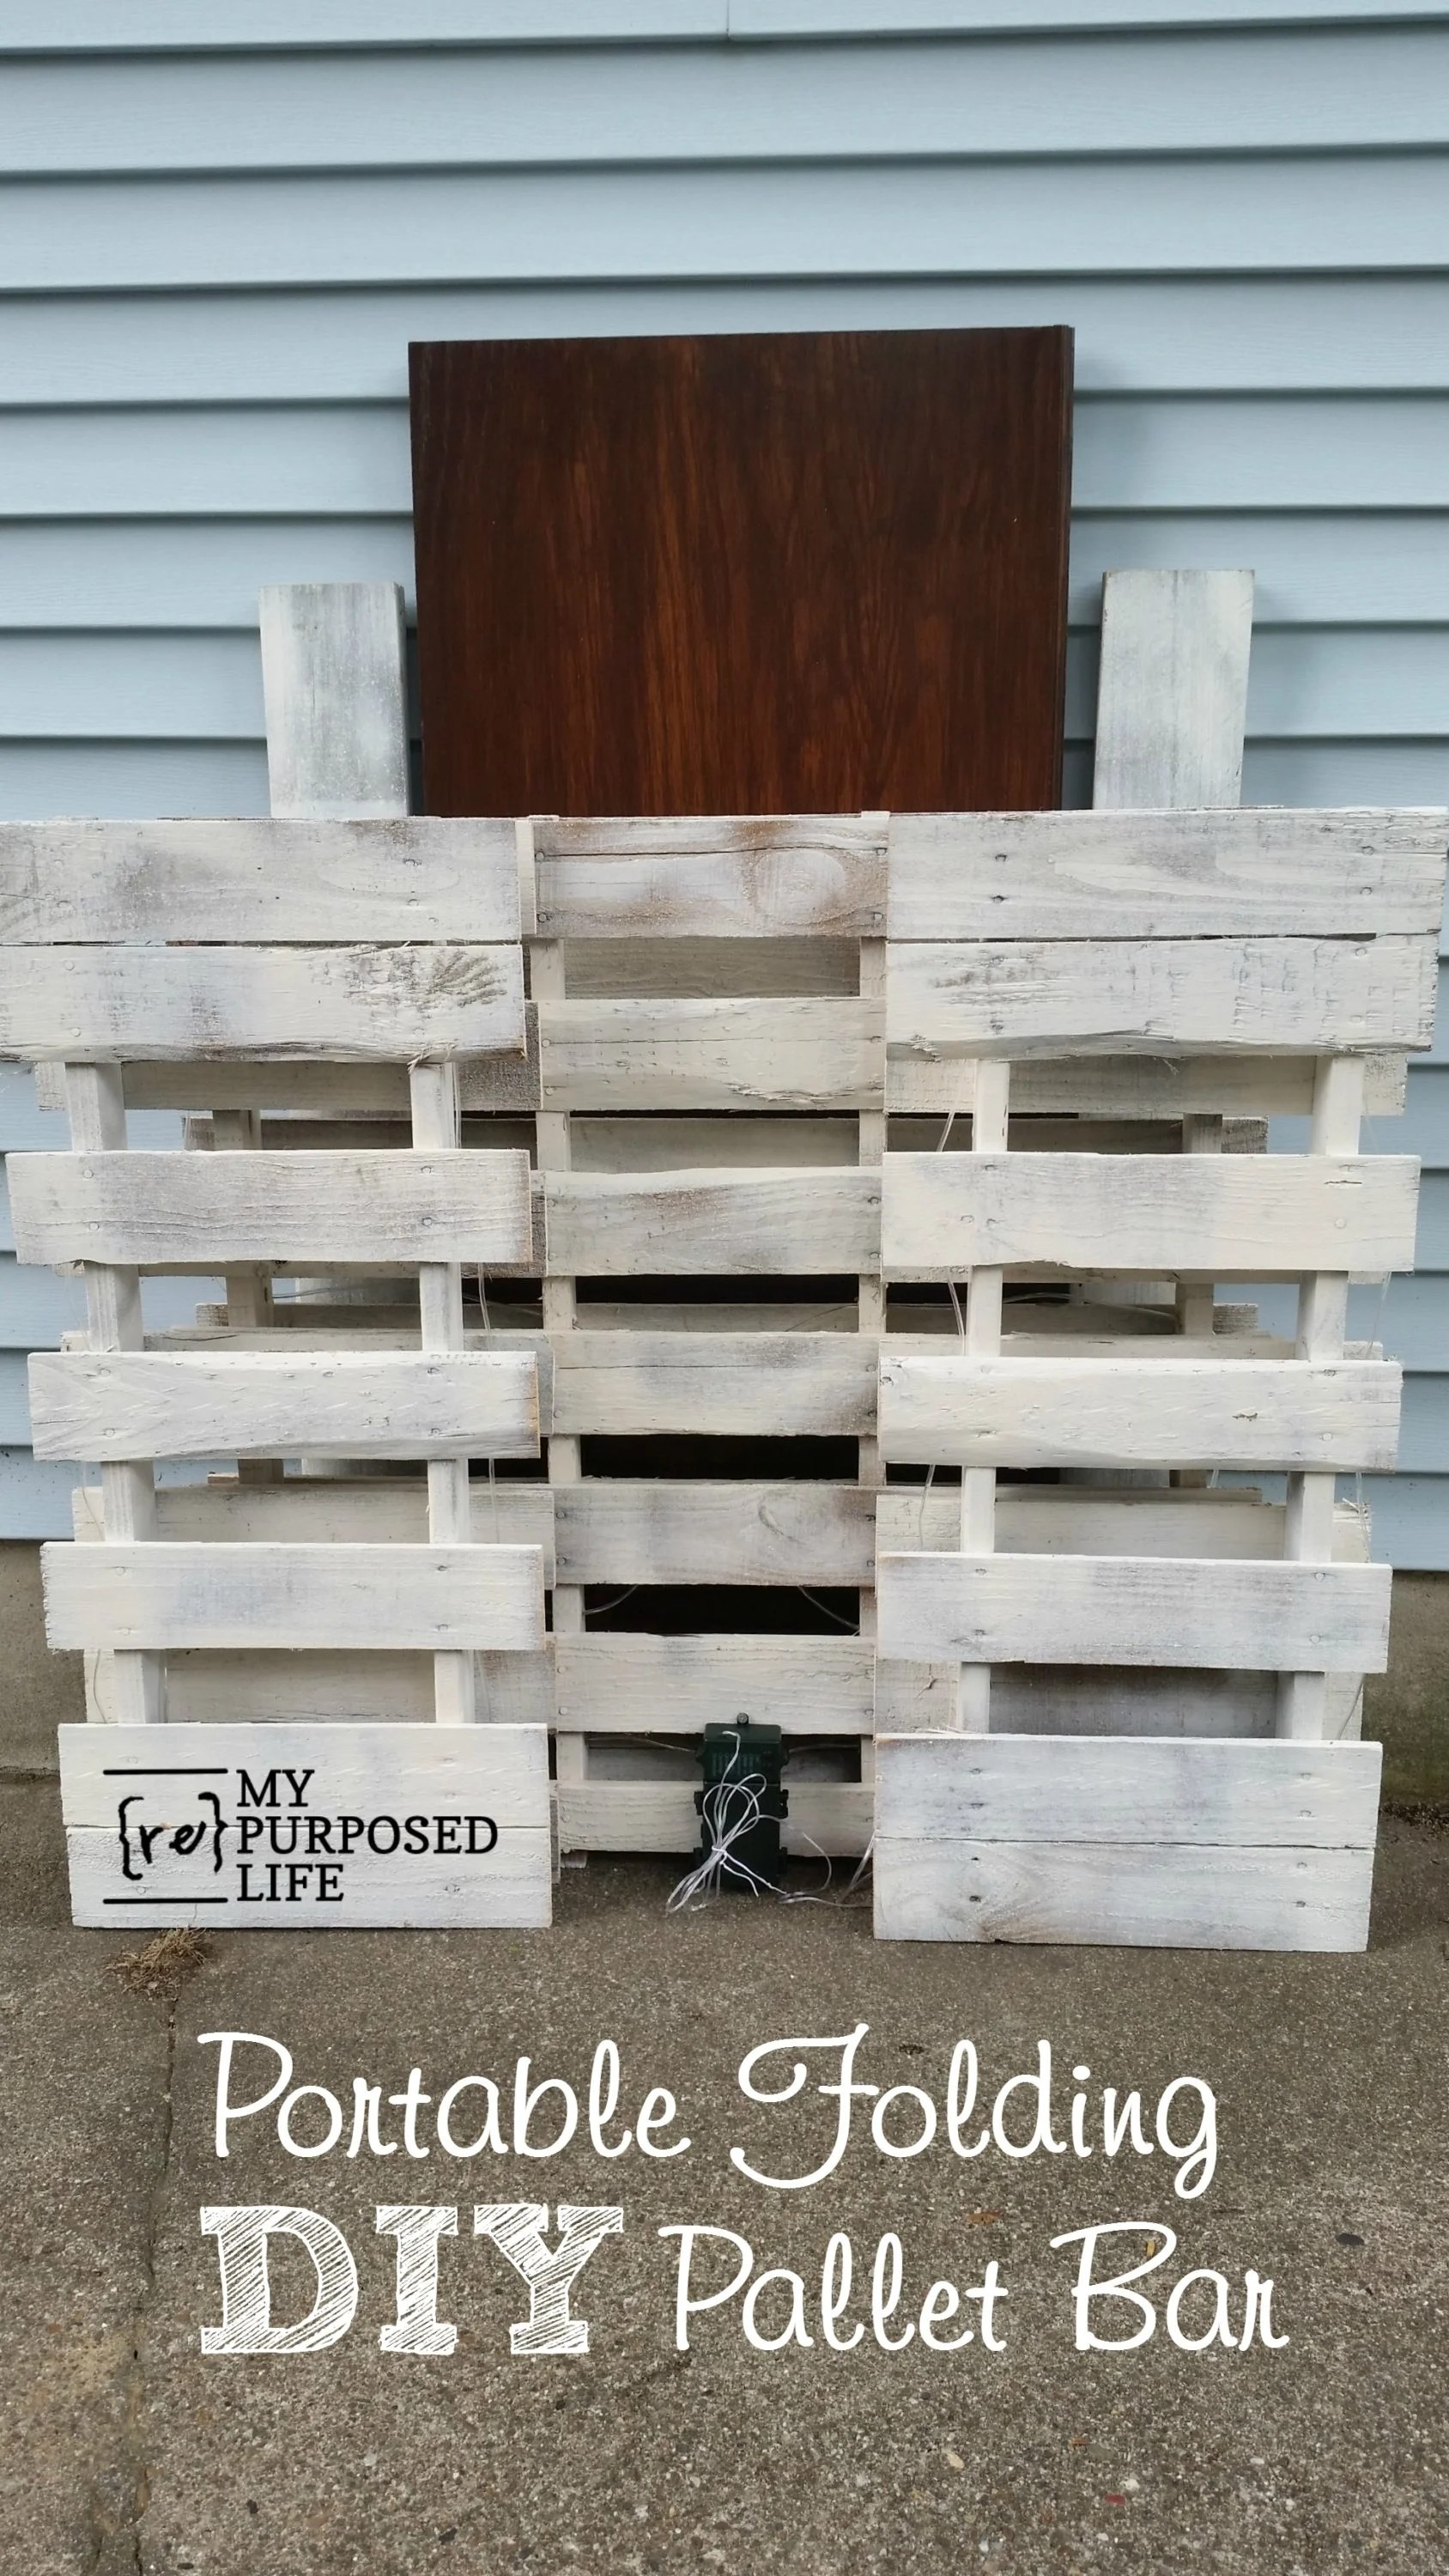 Selbstgebaute Bar Portable Folding Diy Pallet Bar - Great For Weddings, Tailgating And More! - My Repurposed Life® Rescue Re-imagine Repeat